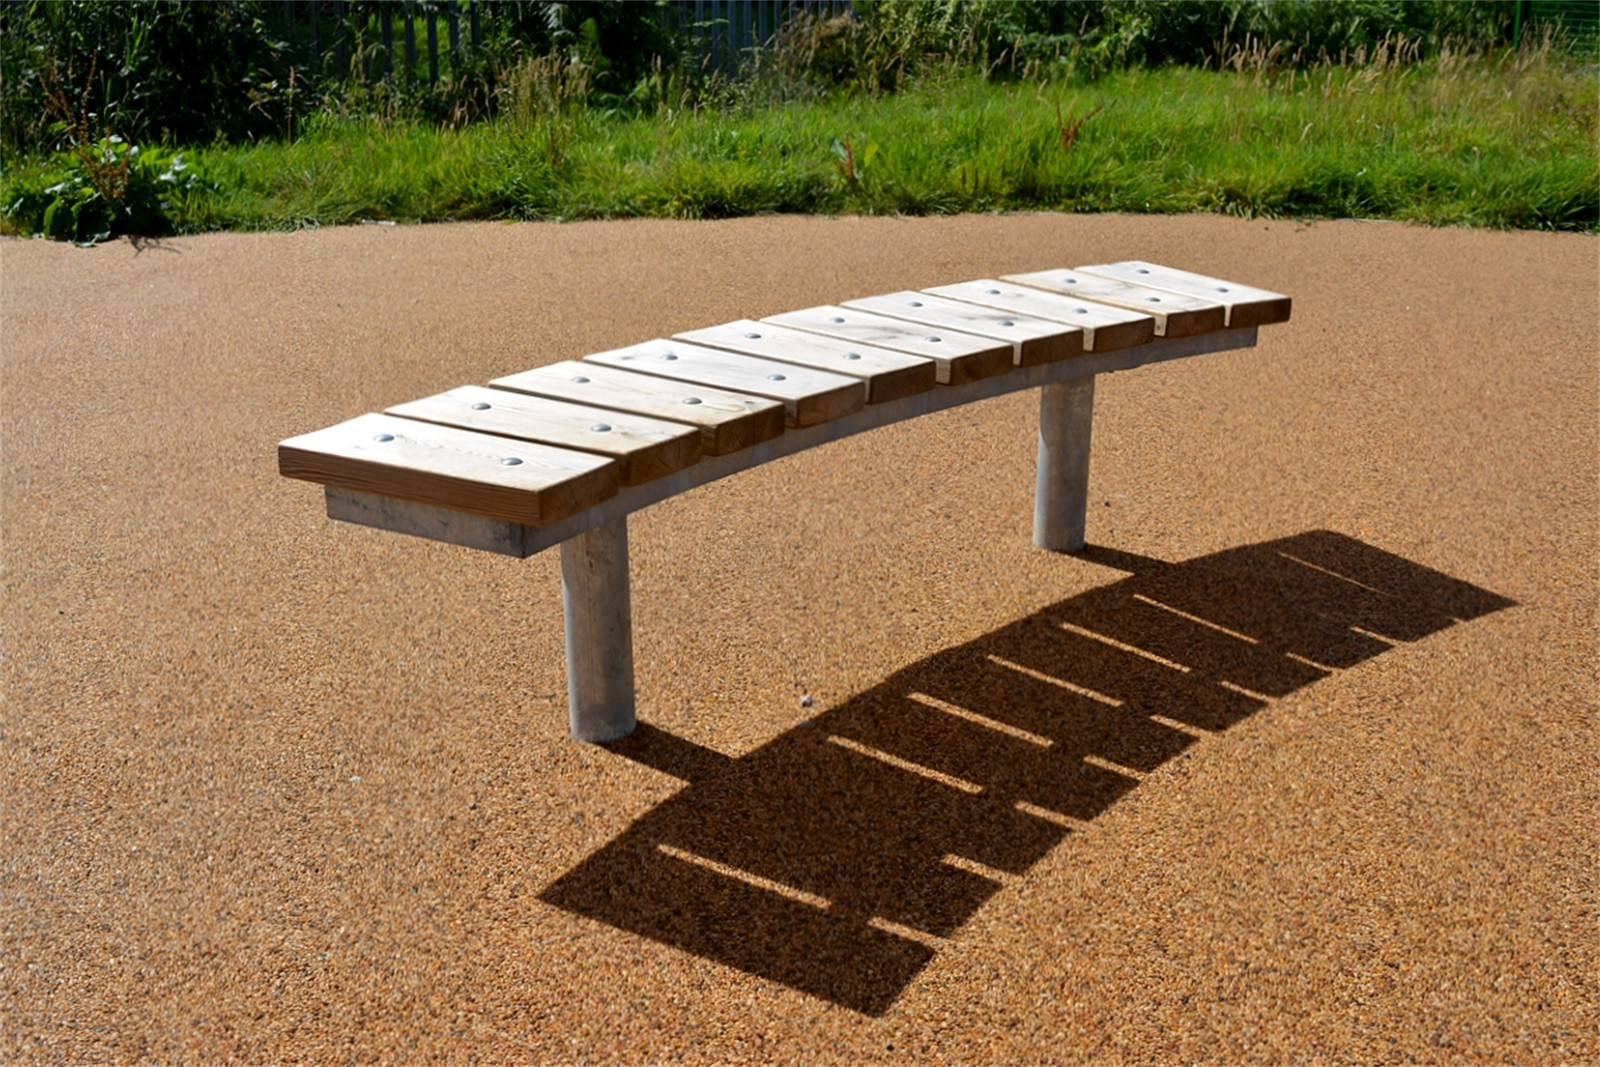 75ssp22 - Spalding curved bench